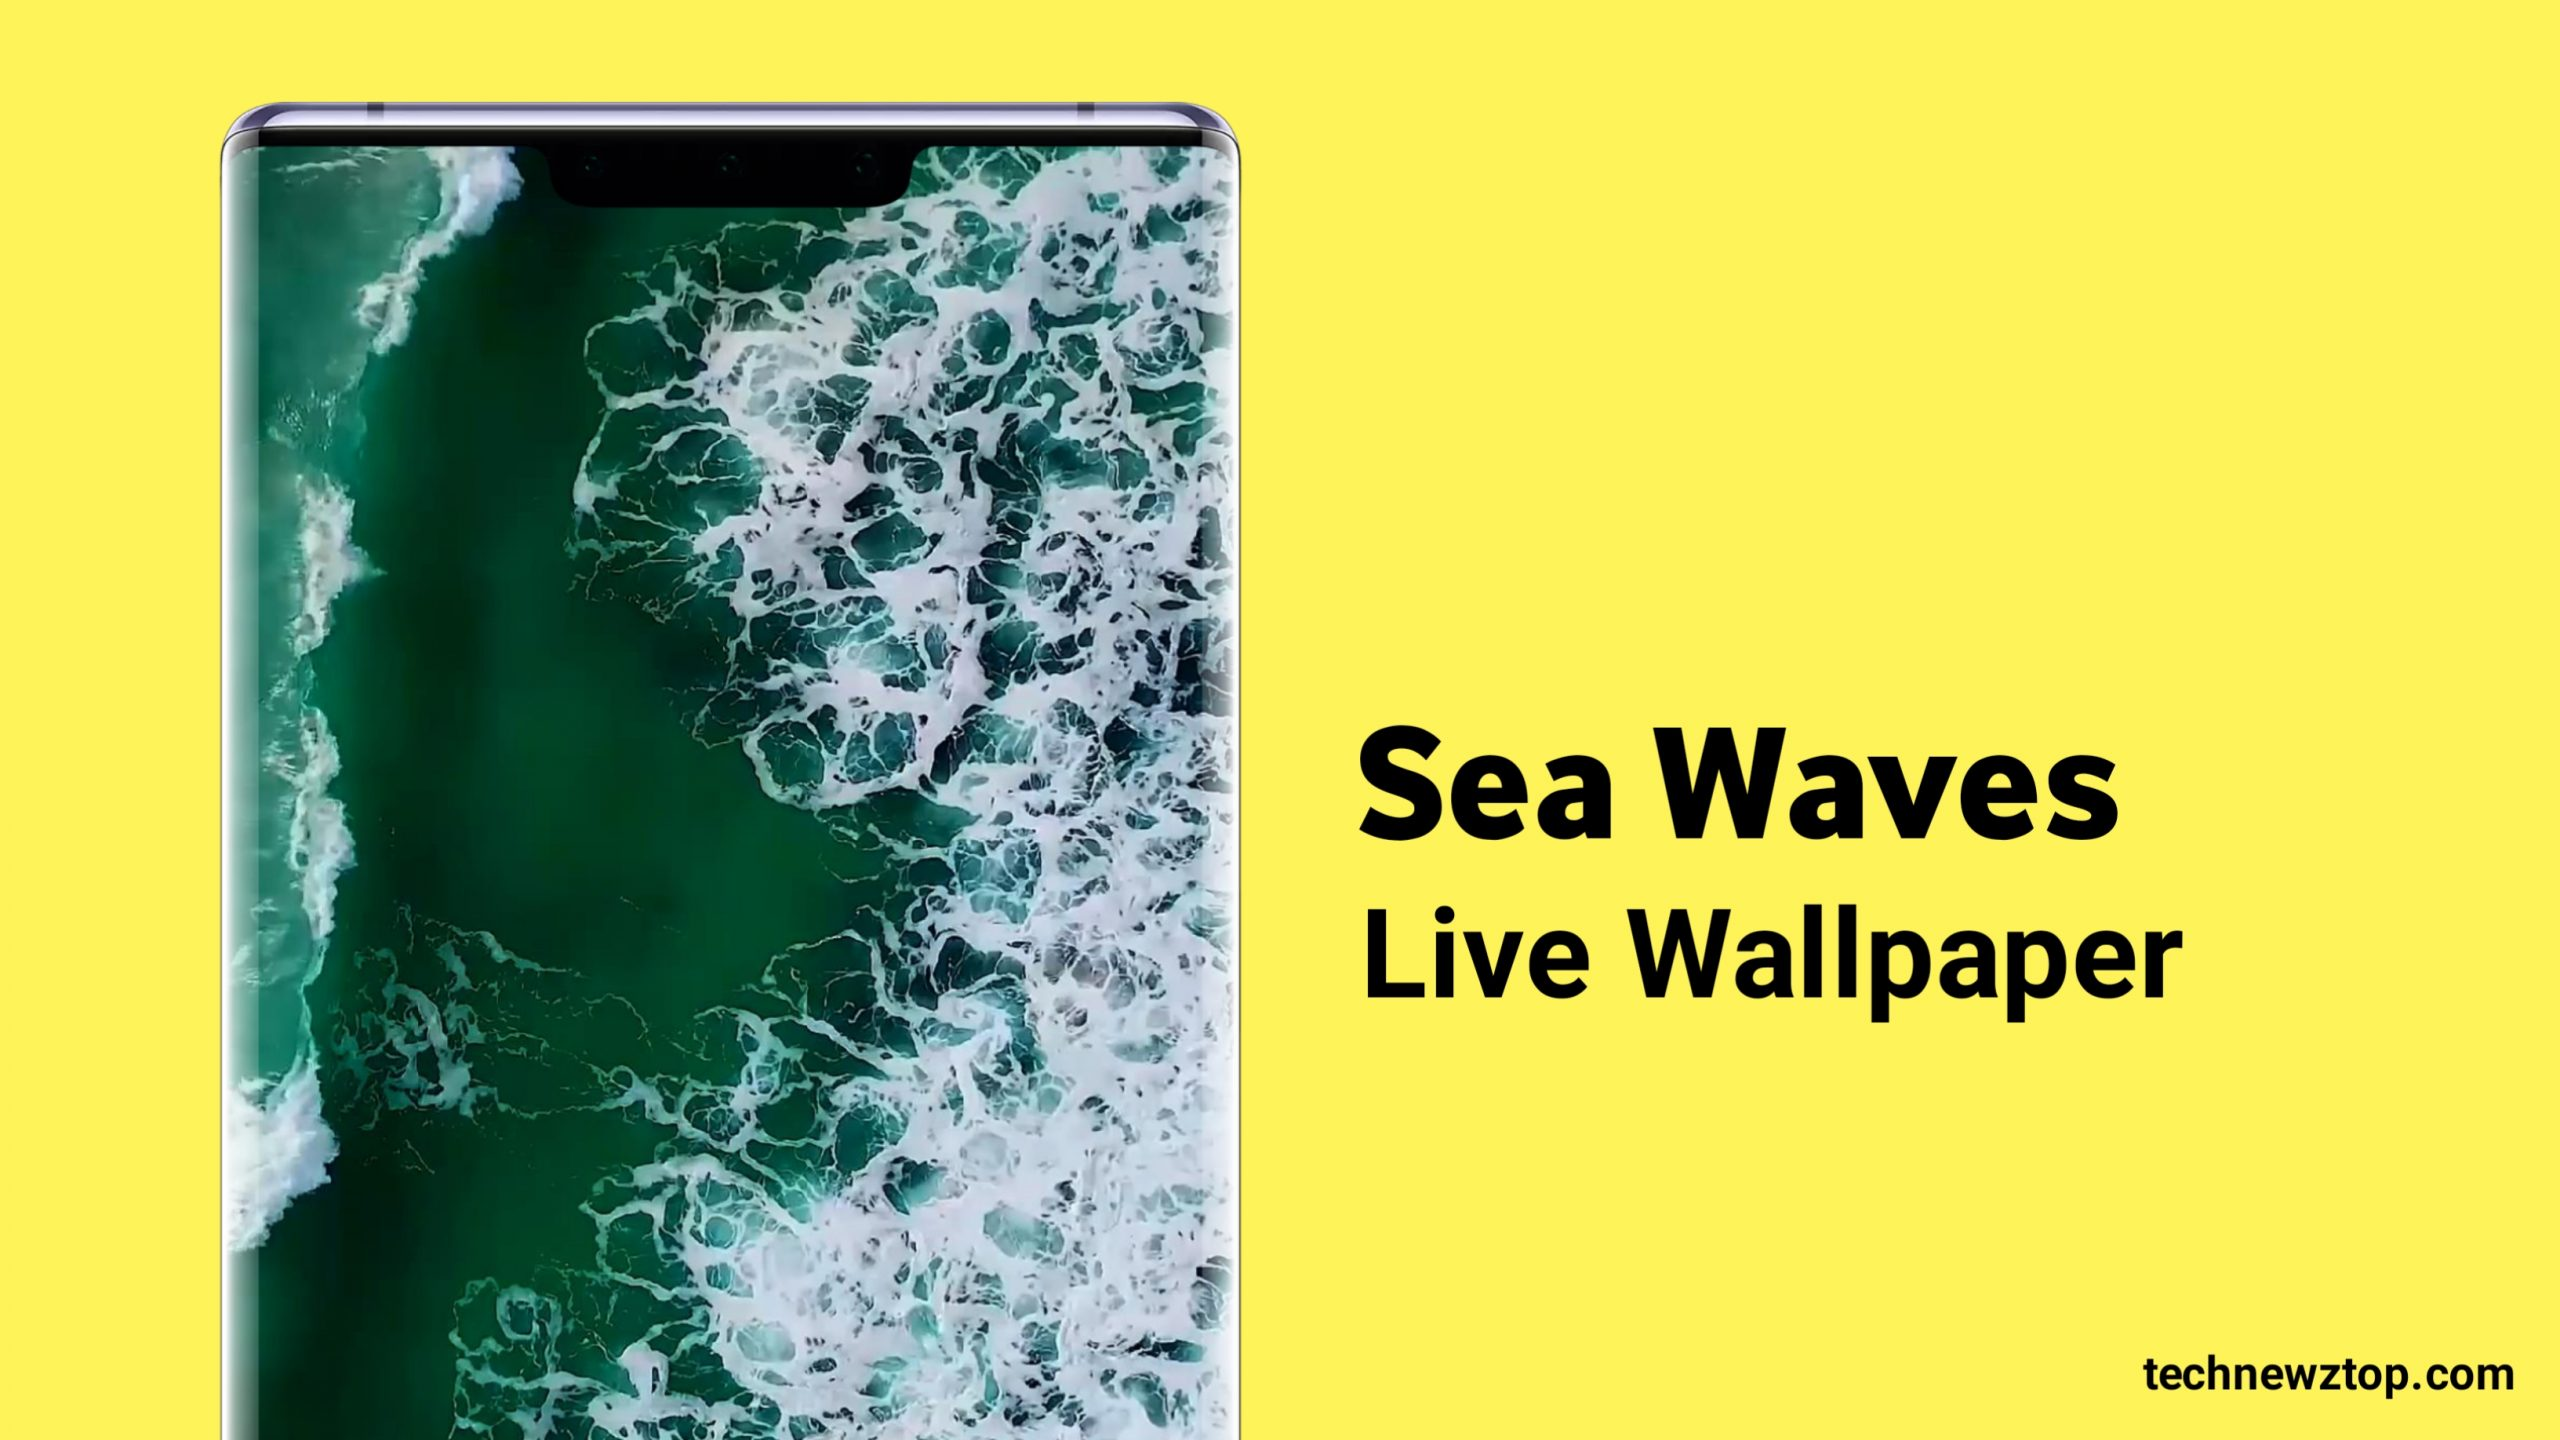 Free 3D Live Wallpaper For Android technewztop.com